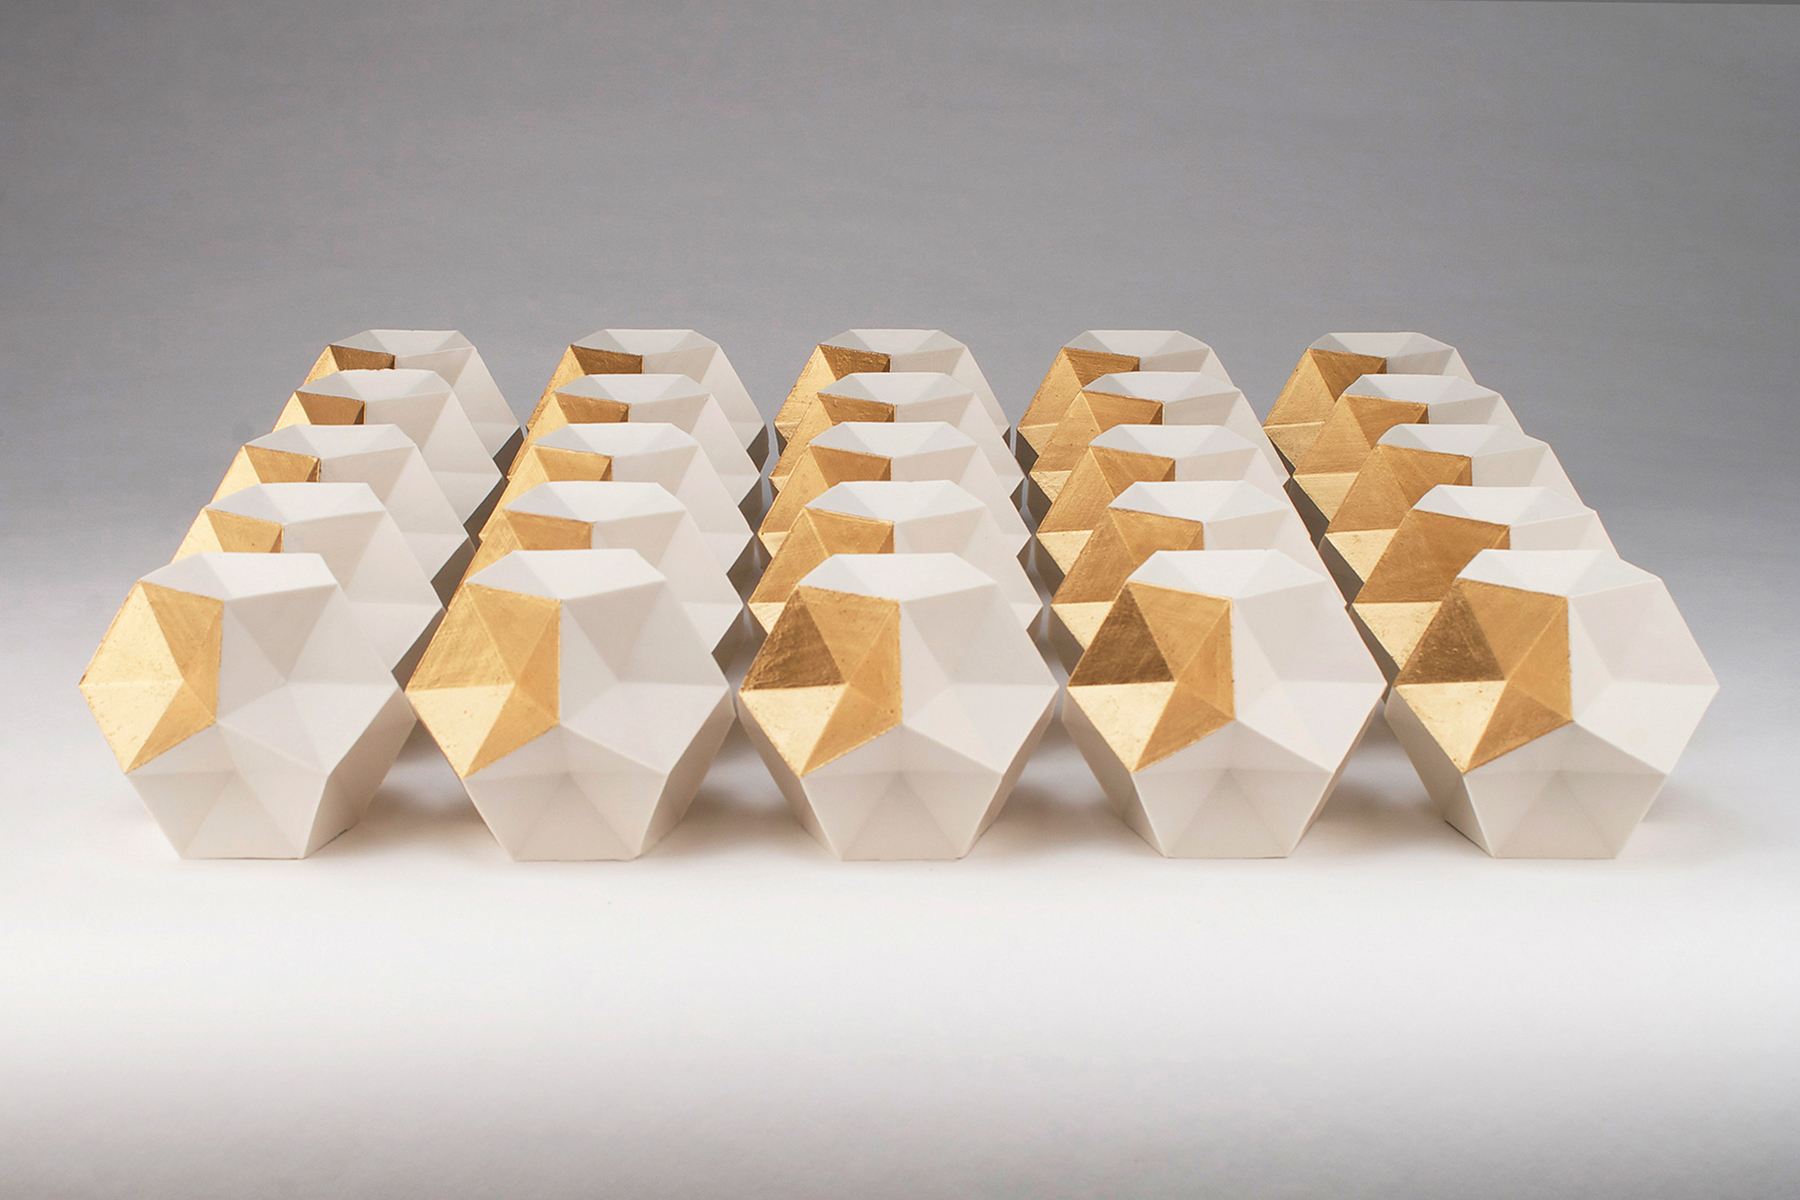 Dodecahedron Series  | Each:  5 x 5 x 5 inches  | Porcelain, Gold leaf  |  2016